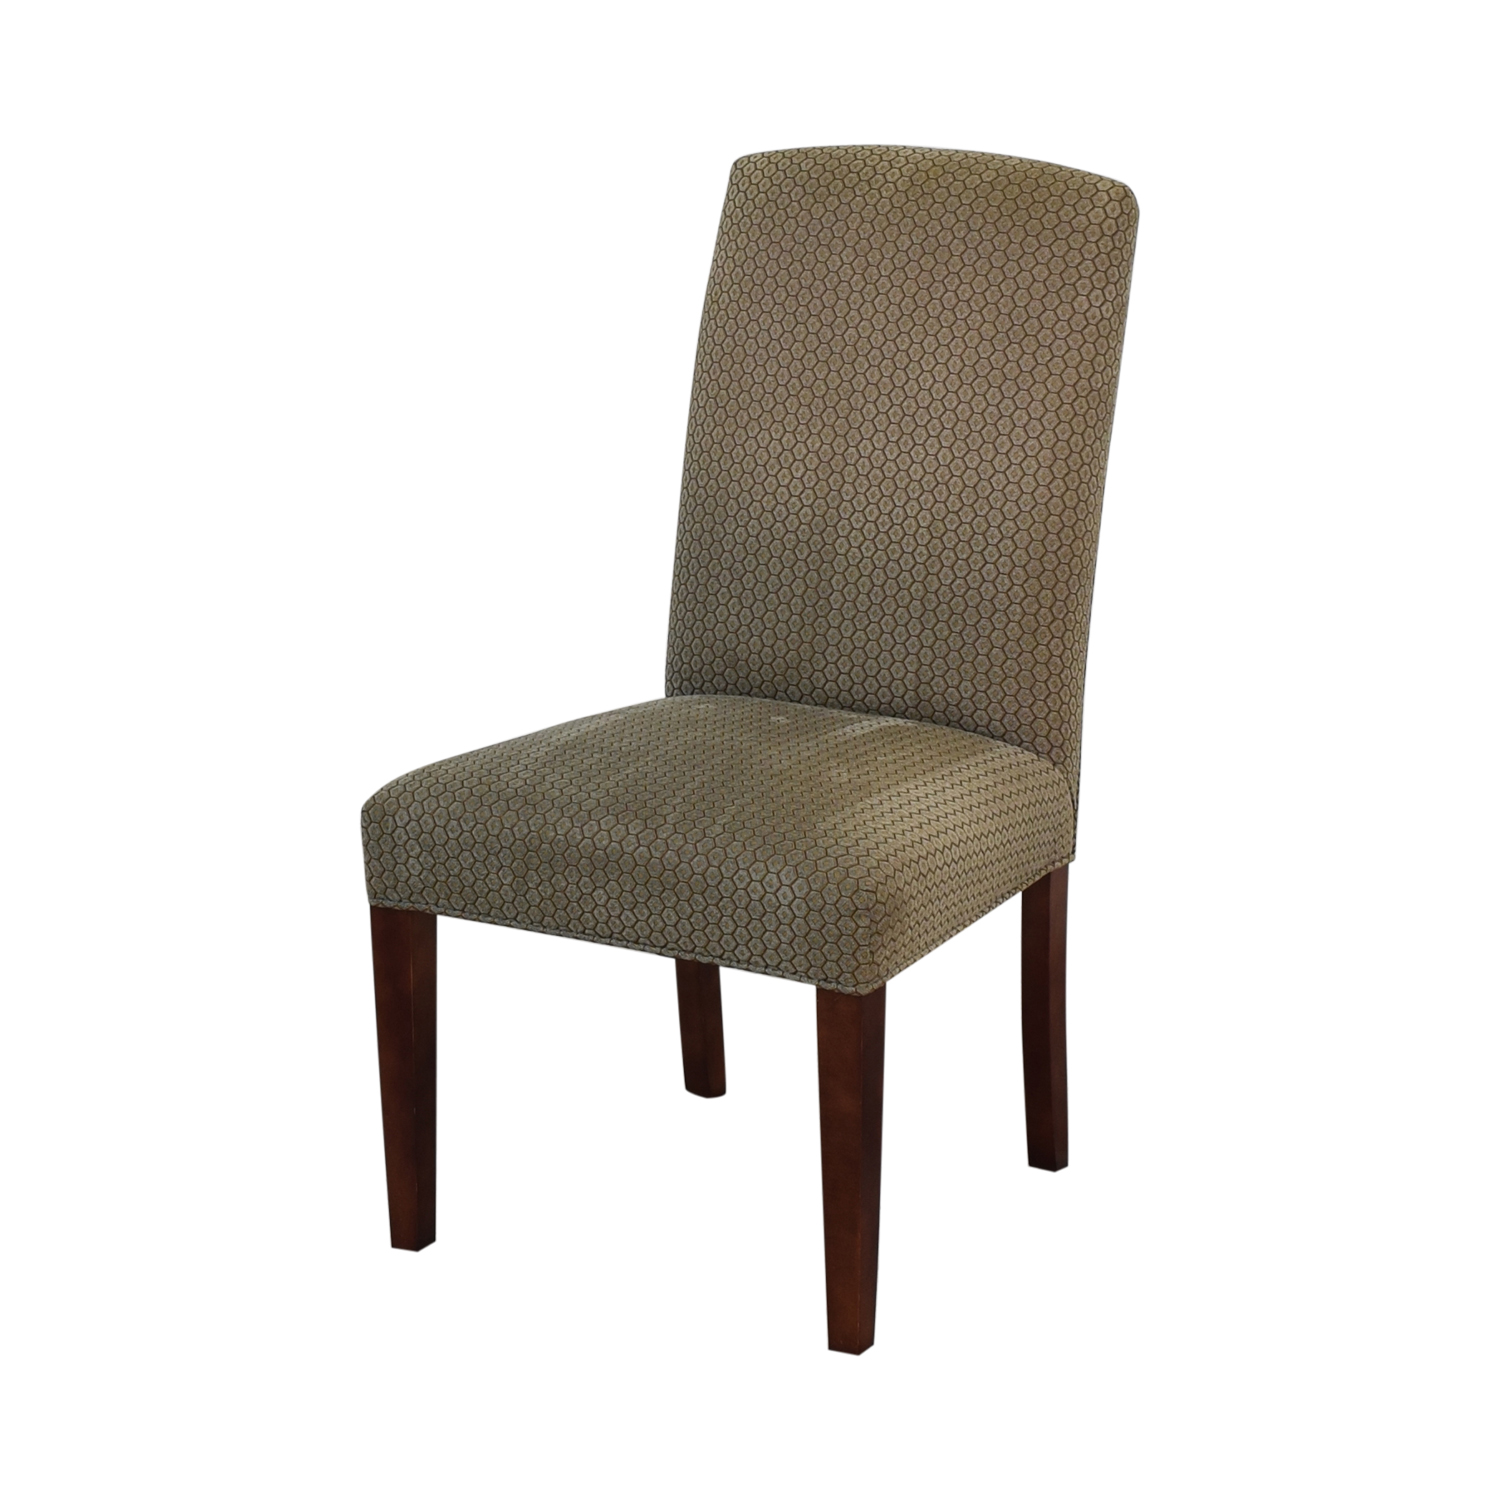 Crate & Barrel Crate & Barrel Dining Chairs Chairs